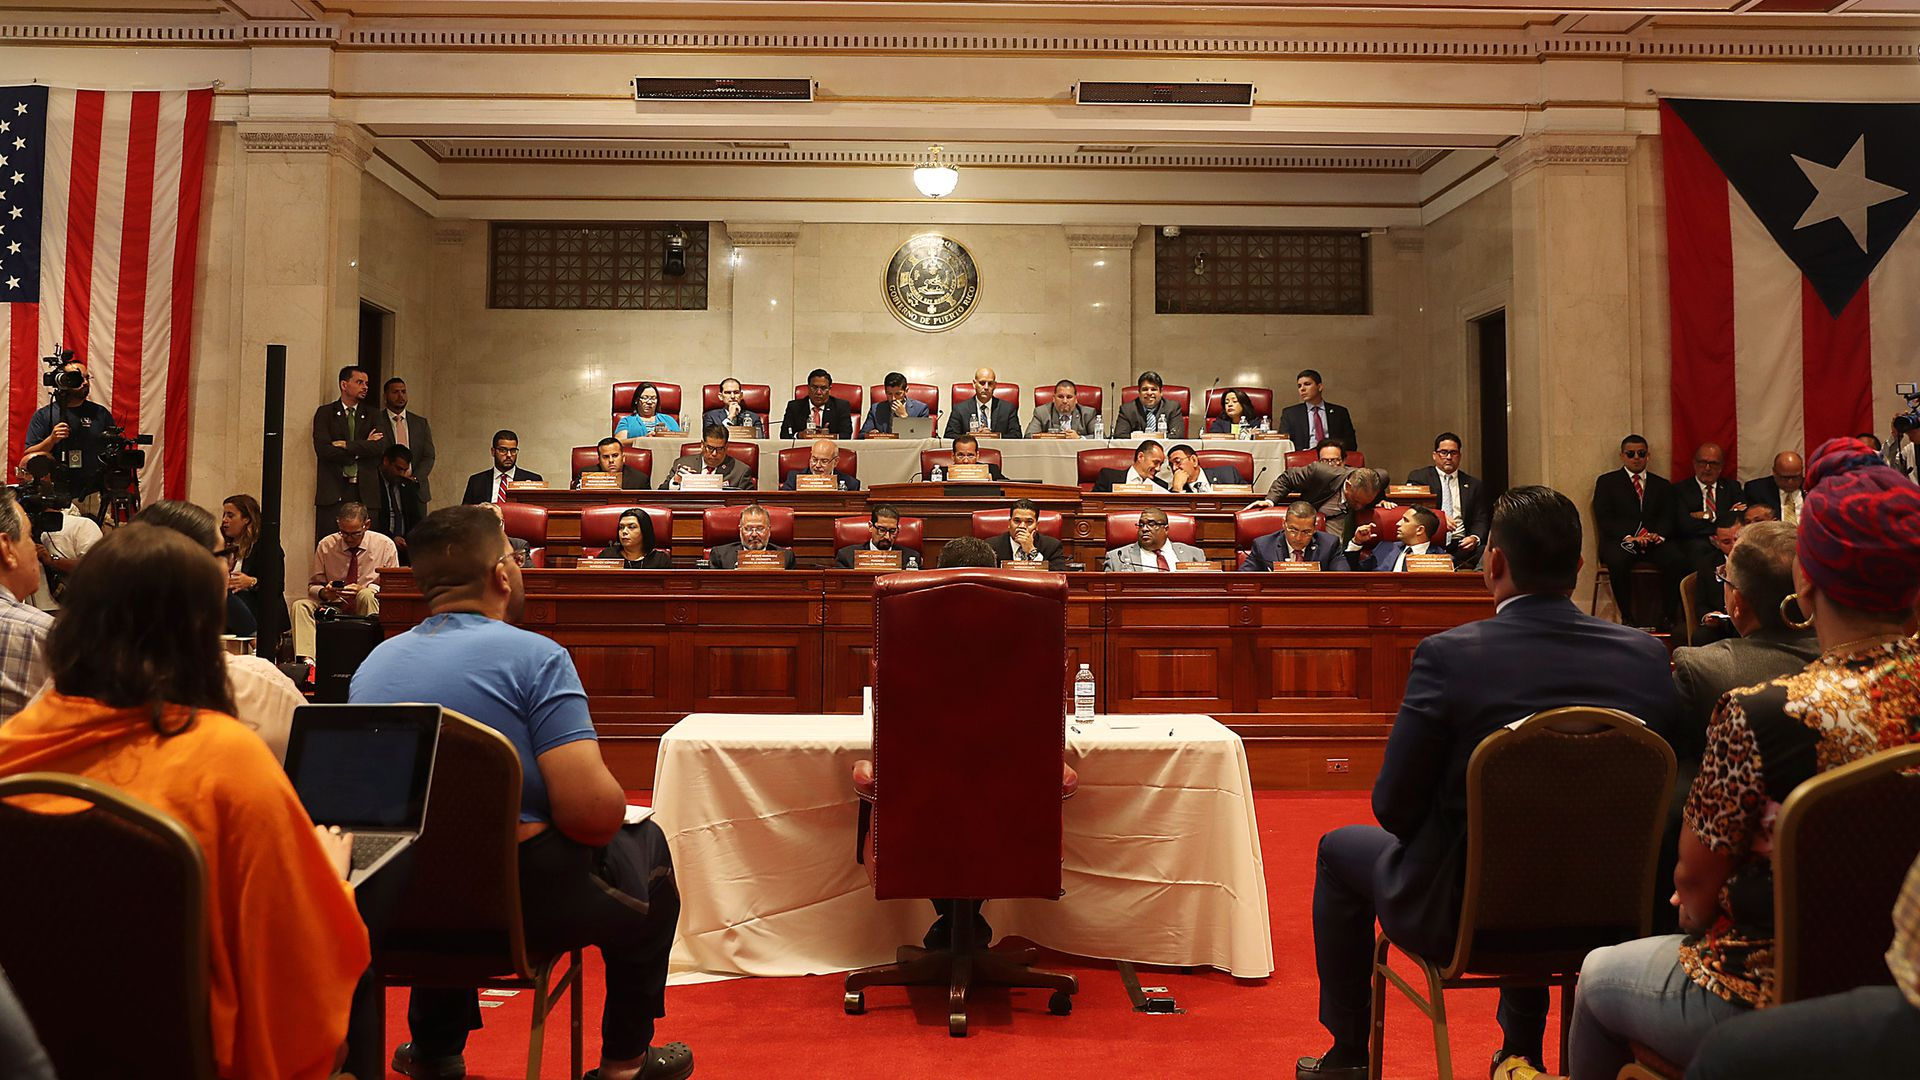 This image shows the inside of the Puerto Rican House of Representatives during a hearing